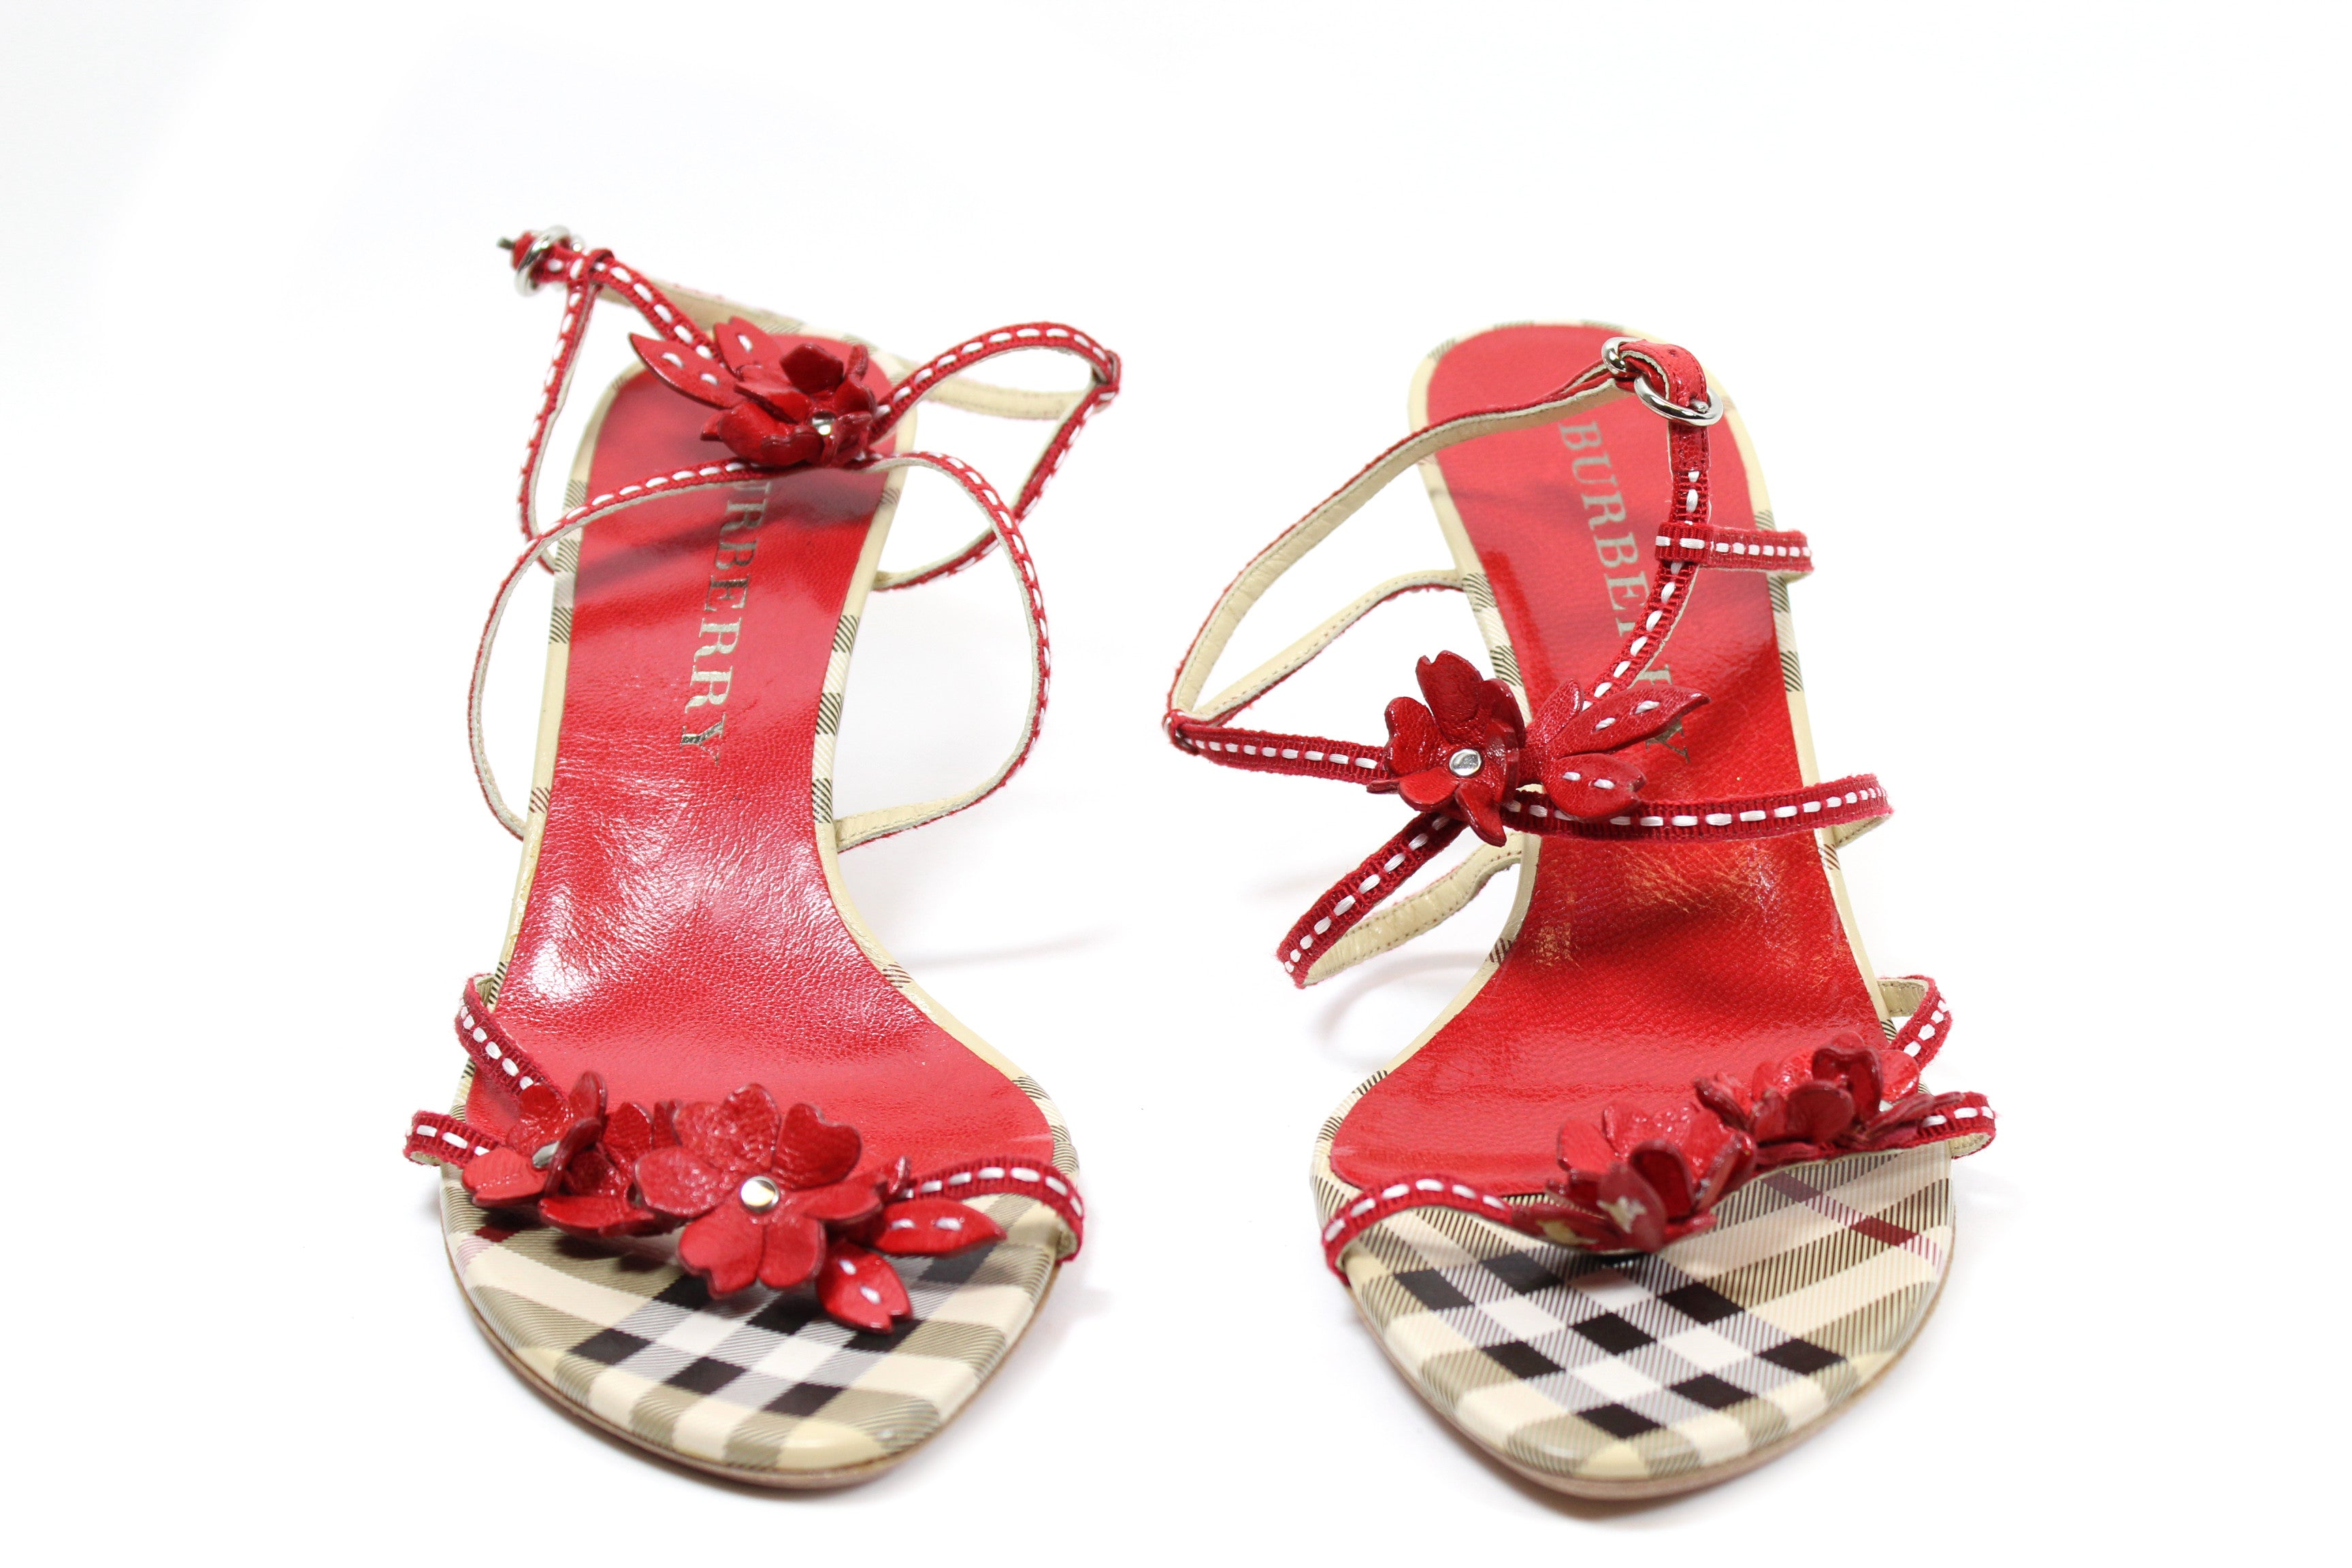 Burberry Nova Check Sandals (Size 36.5)